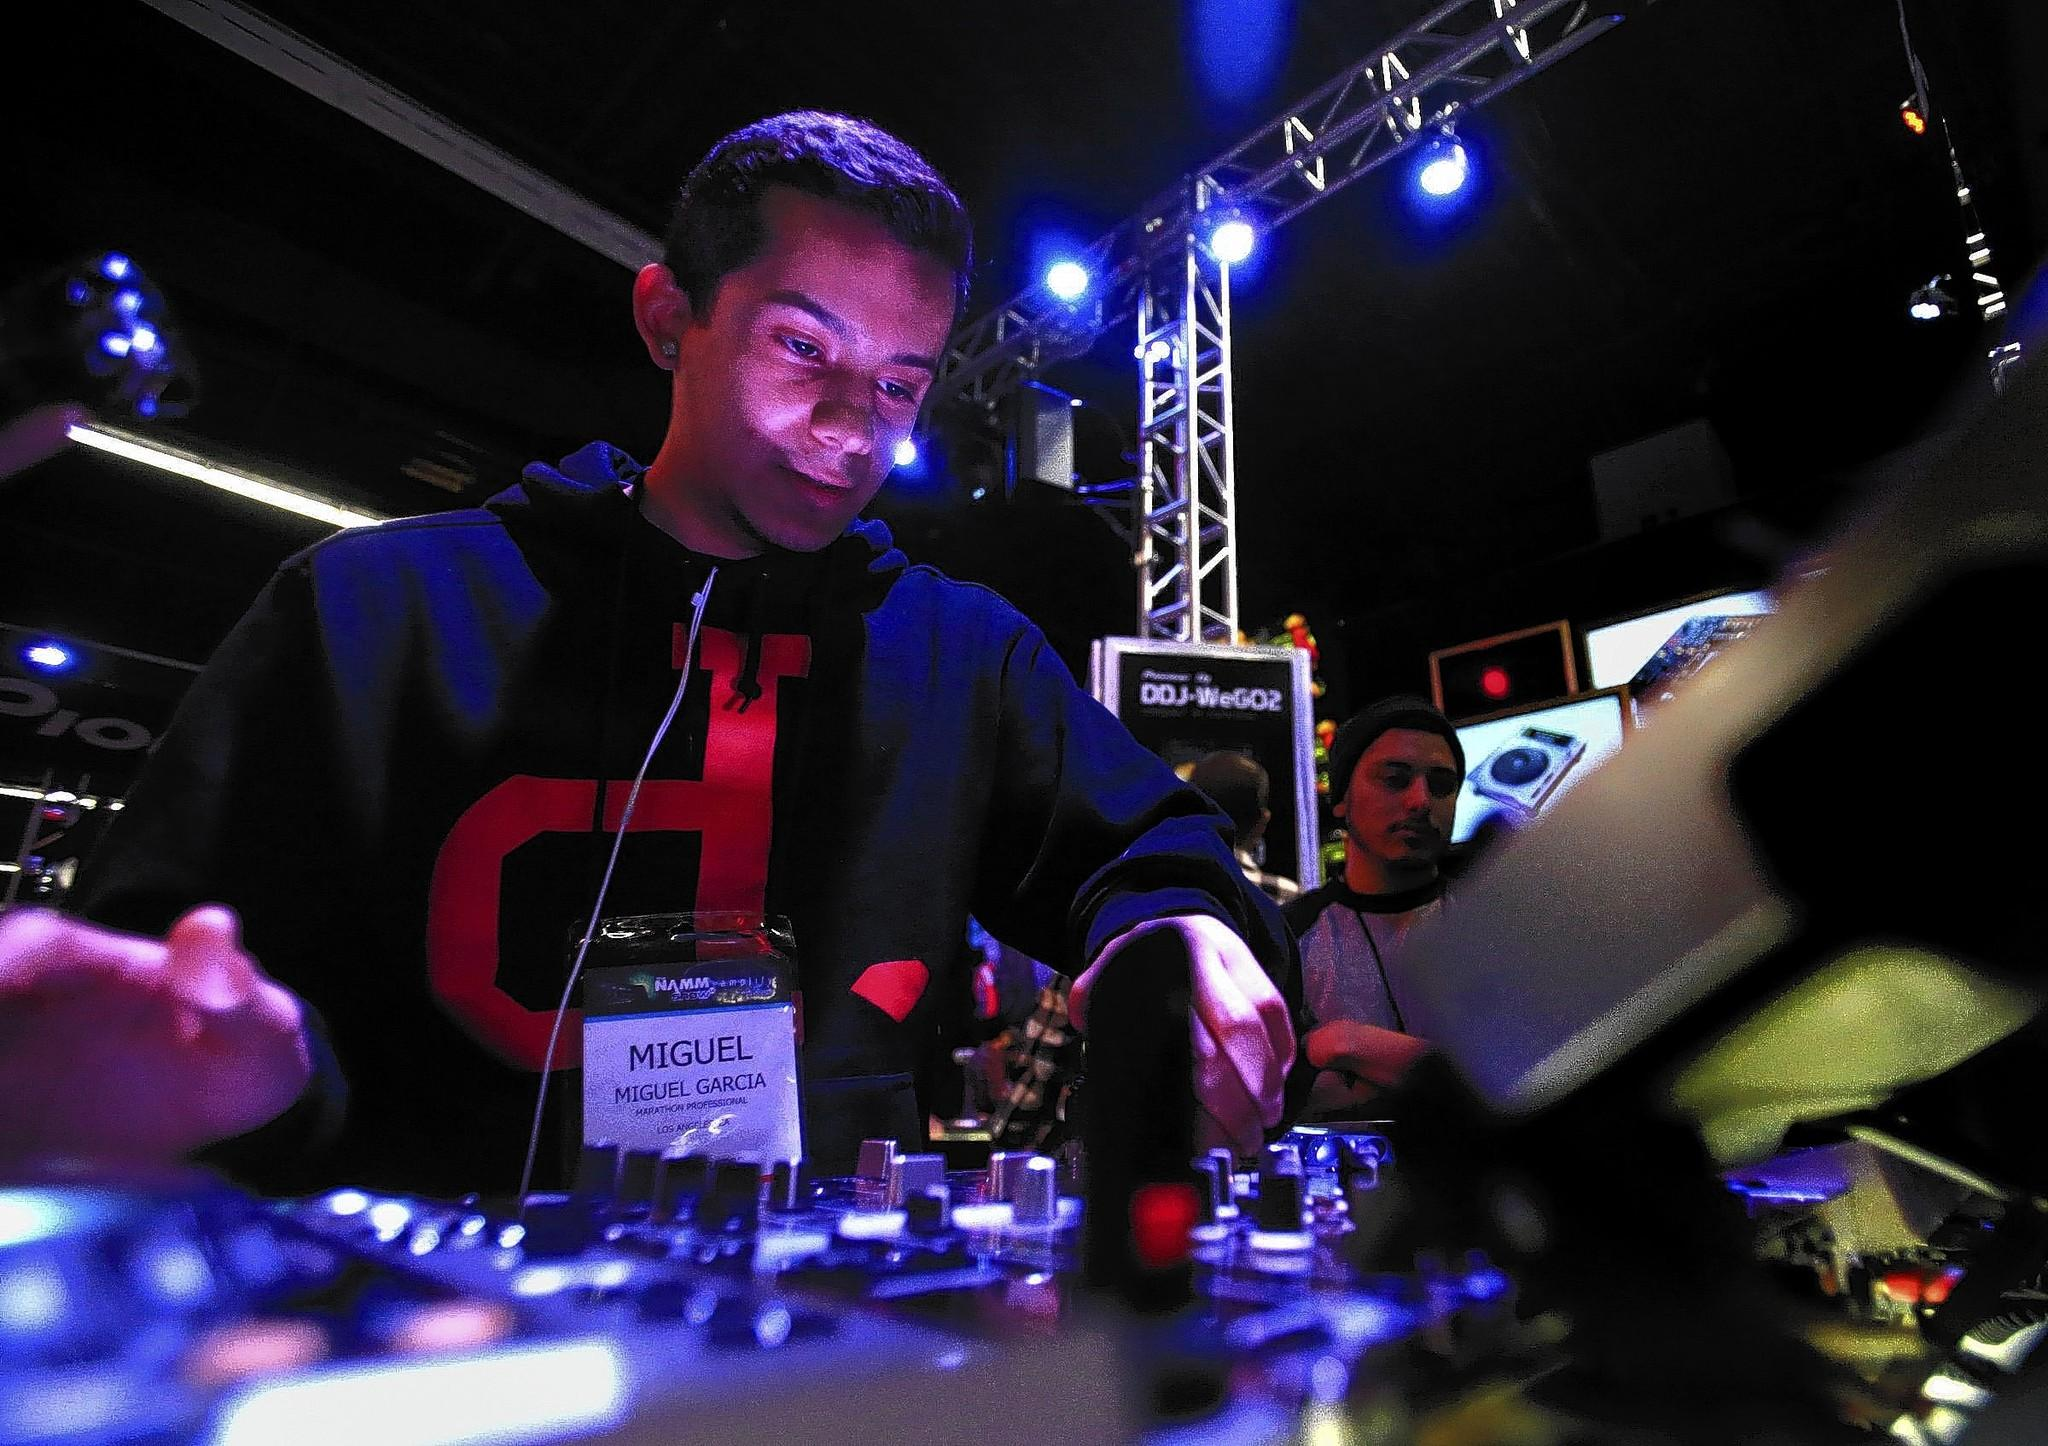 Copyright In Electronic Dance Music: DJs Give New Gear A Spin Amid Boom In Electronic Dance